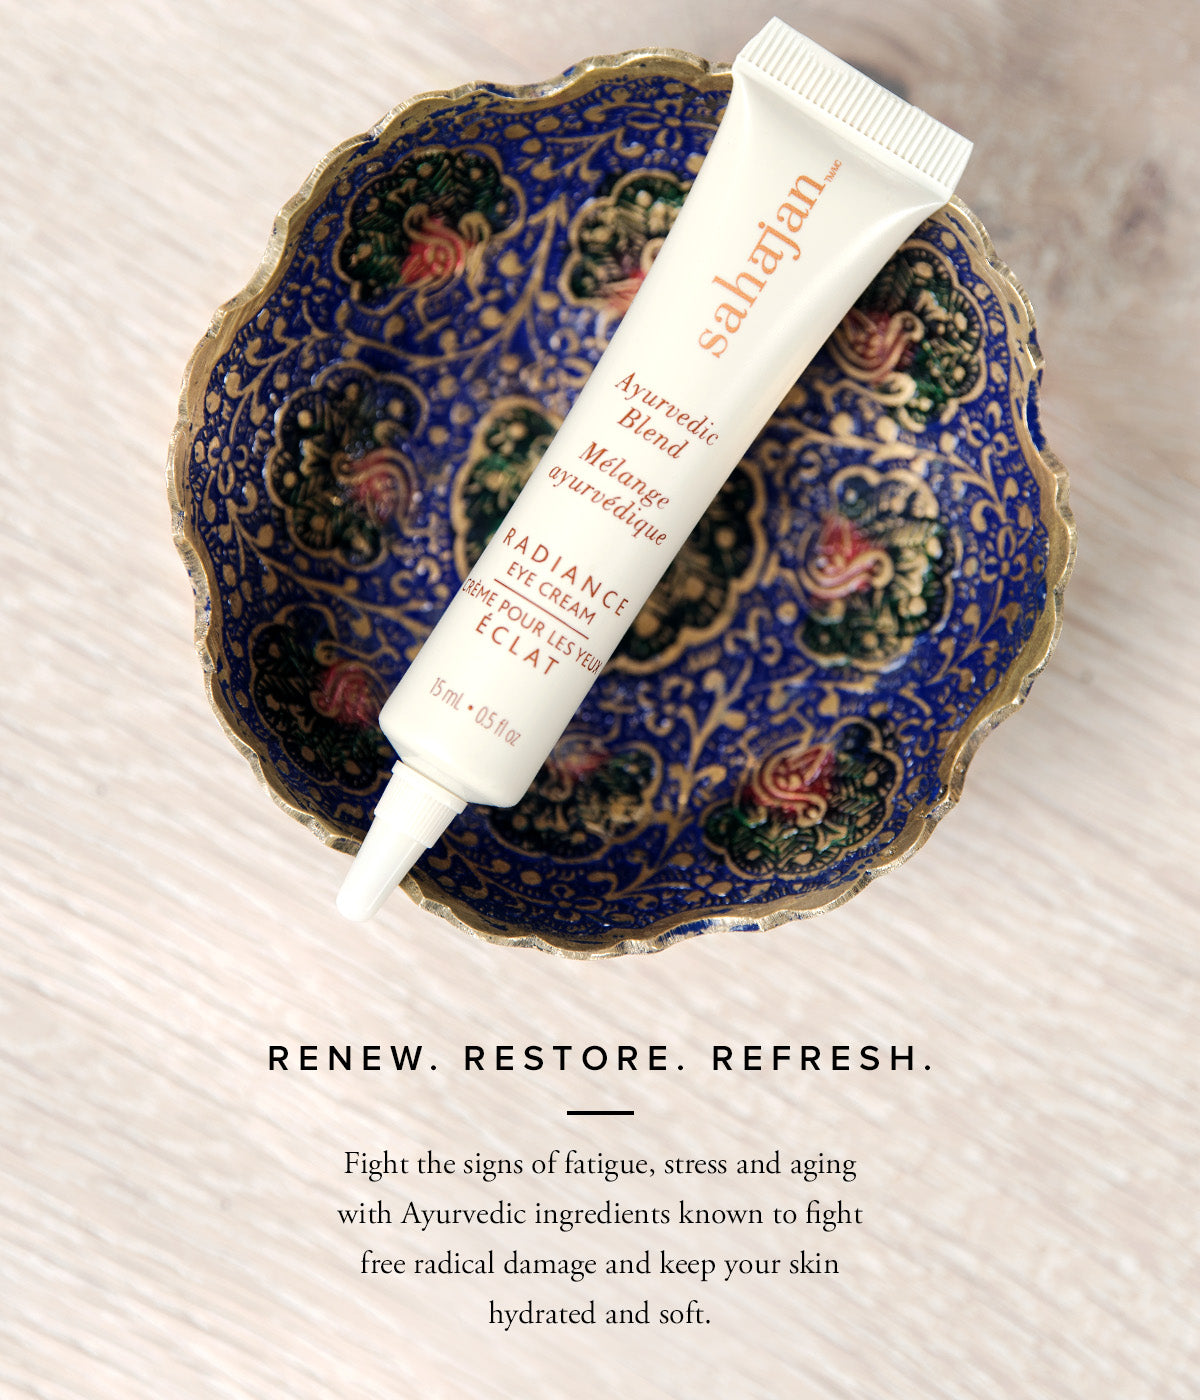 Renew. Restore. Refresh.  Fight the signs of fatigue, stress and aging with Ayurvedic ingredients known to fight free radical damage and keep your skin hydrated and soft.